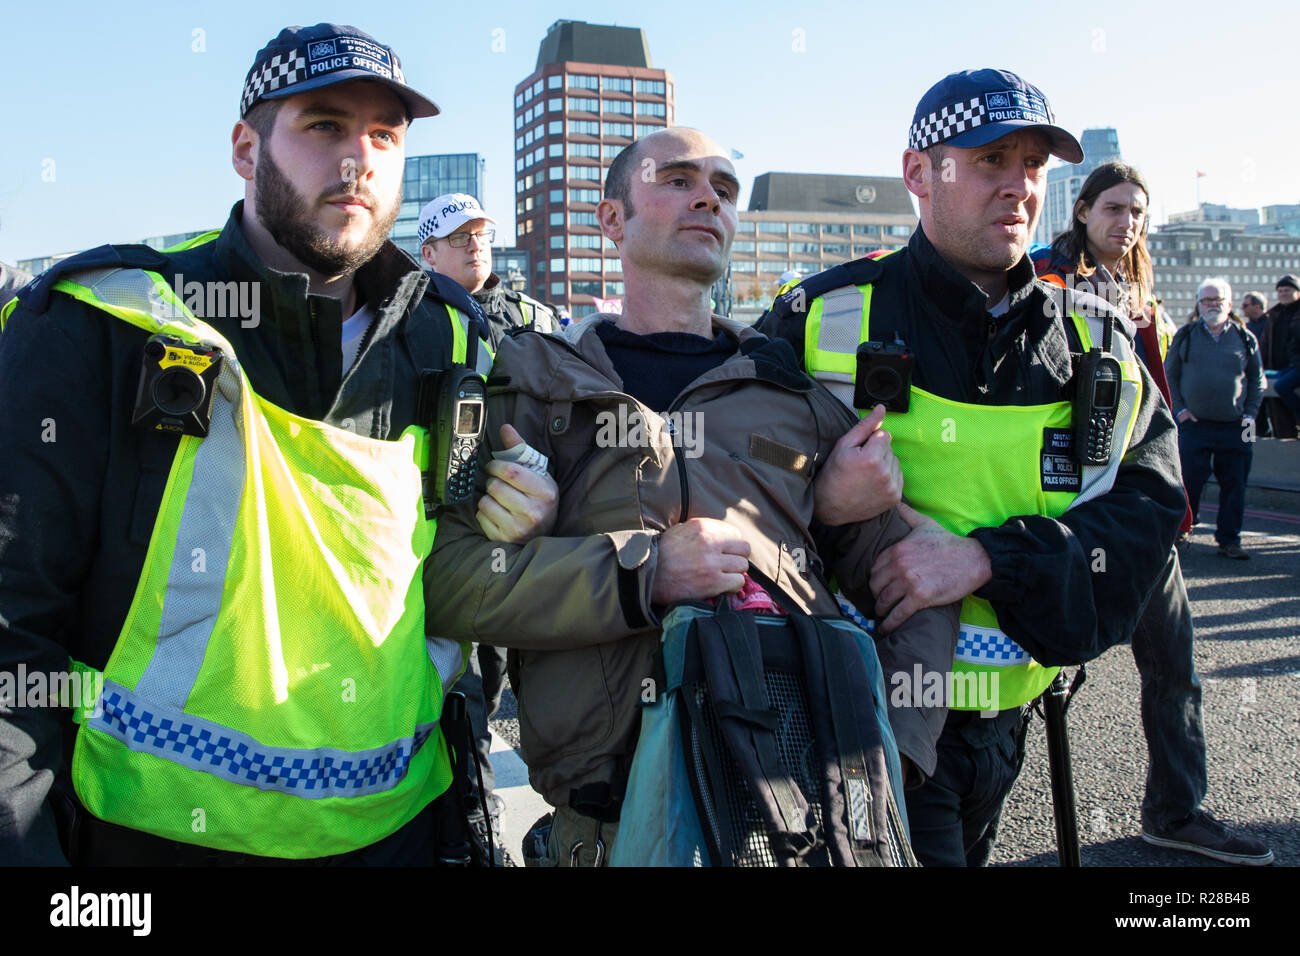 London, UK. 17th November, 2018. Police officers arrest a man after environmental campaigners from Extinction Rebellion blocked Lambeth Bridge, one of five bridges blocked in central London, as part of a Rebellion Day event to highlight 'criminal inaction in the face of climate change catastrophe and ecological collapse' by the UK Government as part of a programme of civil disobedience during which scores of campaigners have been arrested. Credit: Mark Kerrison/Alamy Live News Stock Photo